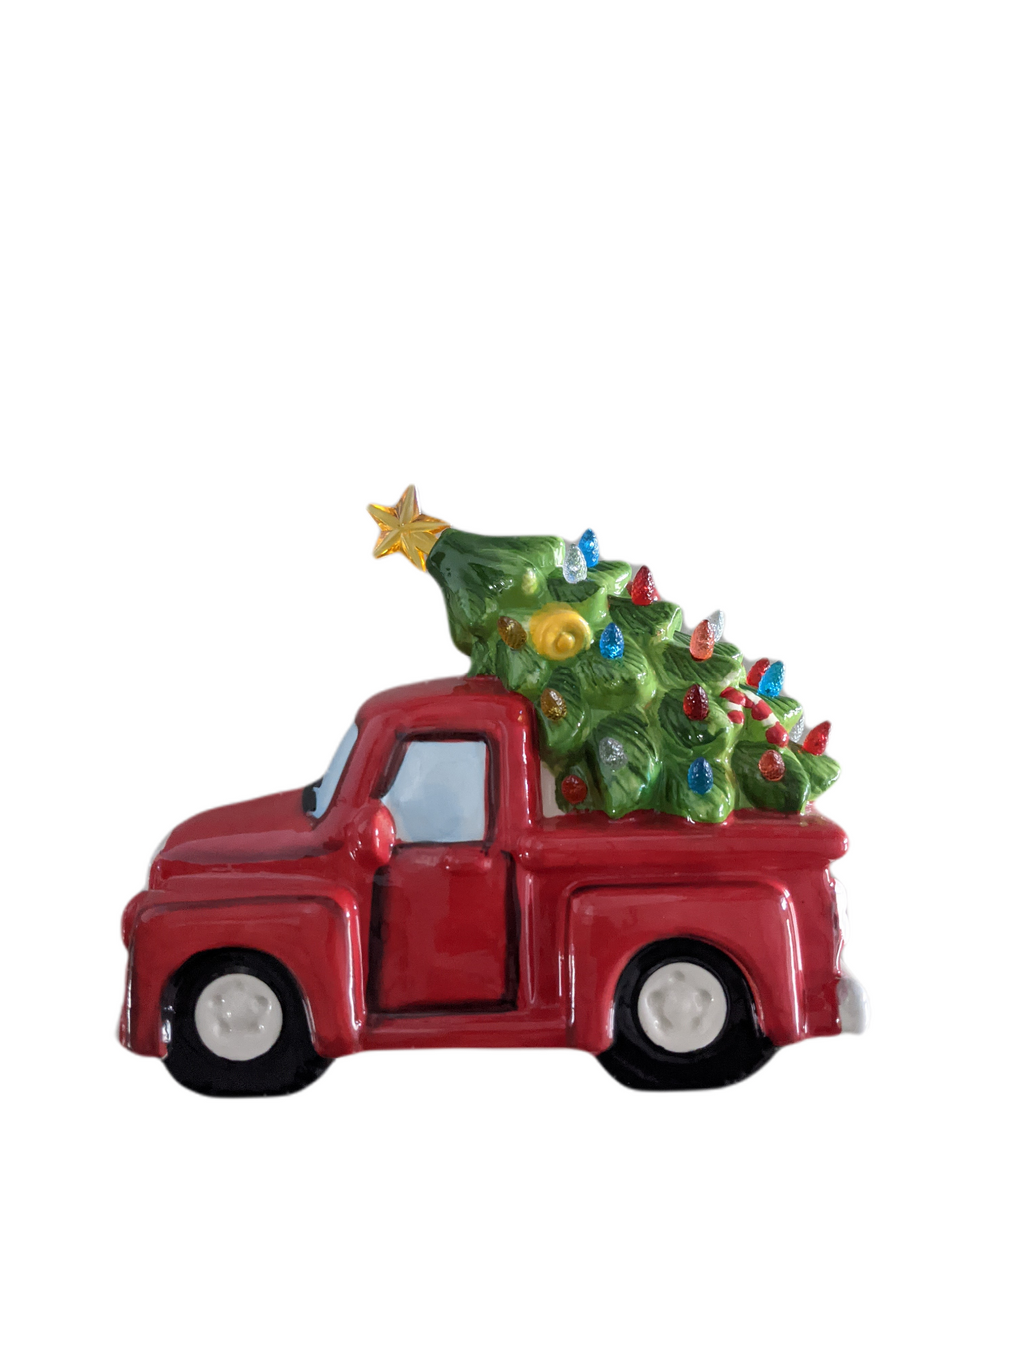 "Gerson 9.6"" Lighted Decorations - Red Pick Up Truck"